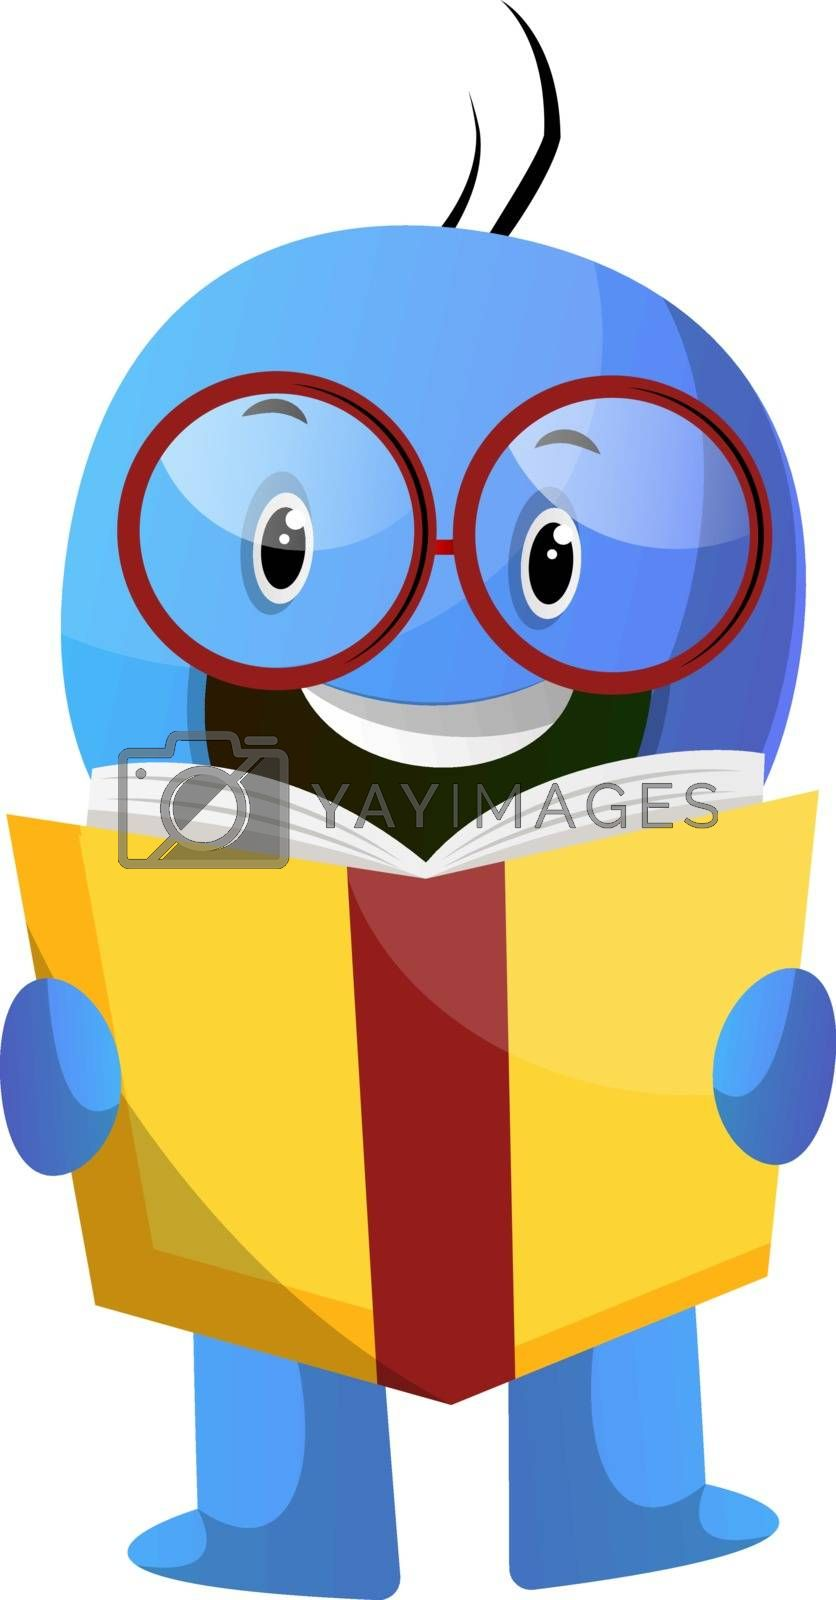 Royalty free image of Blue cartoon caracter with book and glasses illustration vector  by Morphart